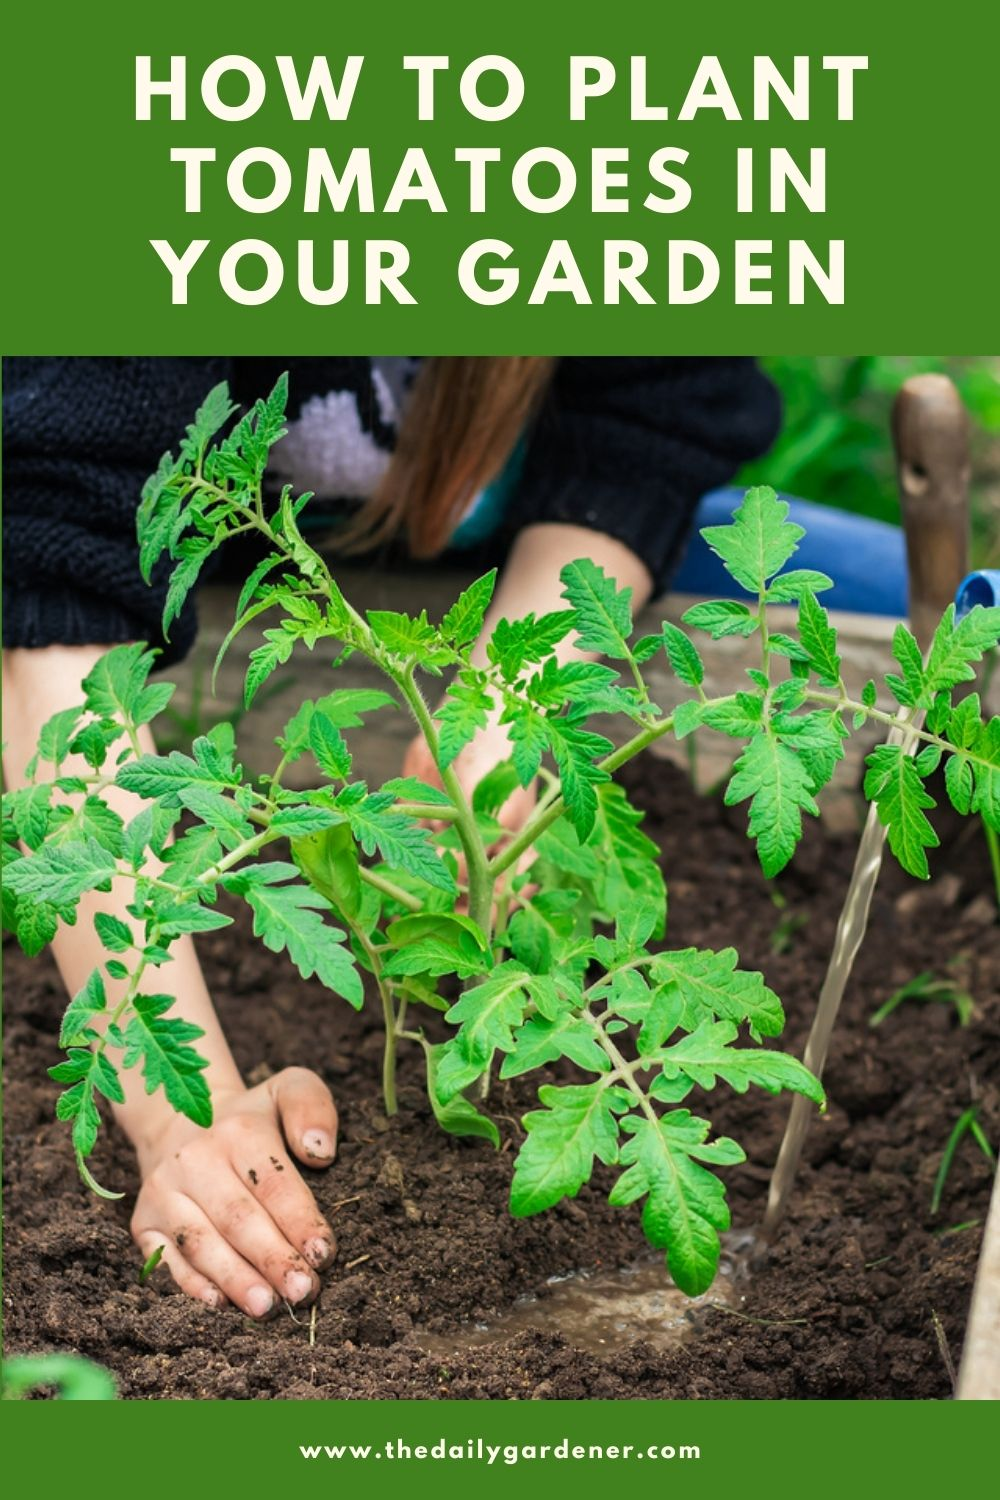 How to Plant Tomatoes in Your Garden (Tricks to Care!) 1